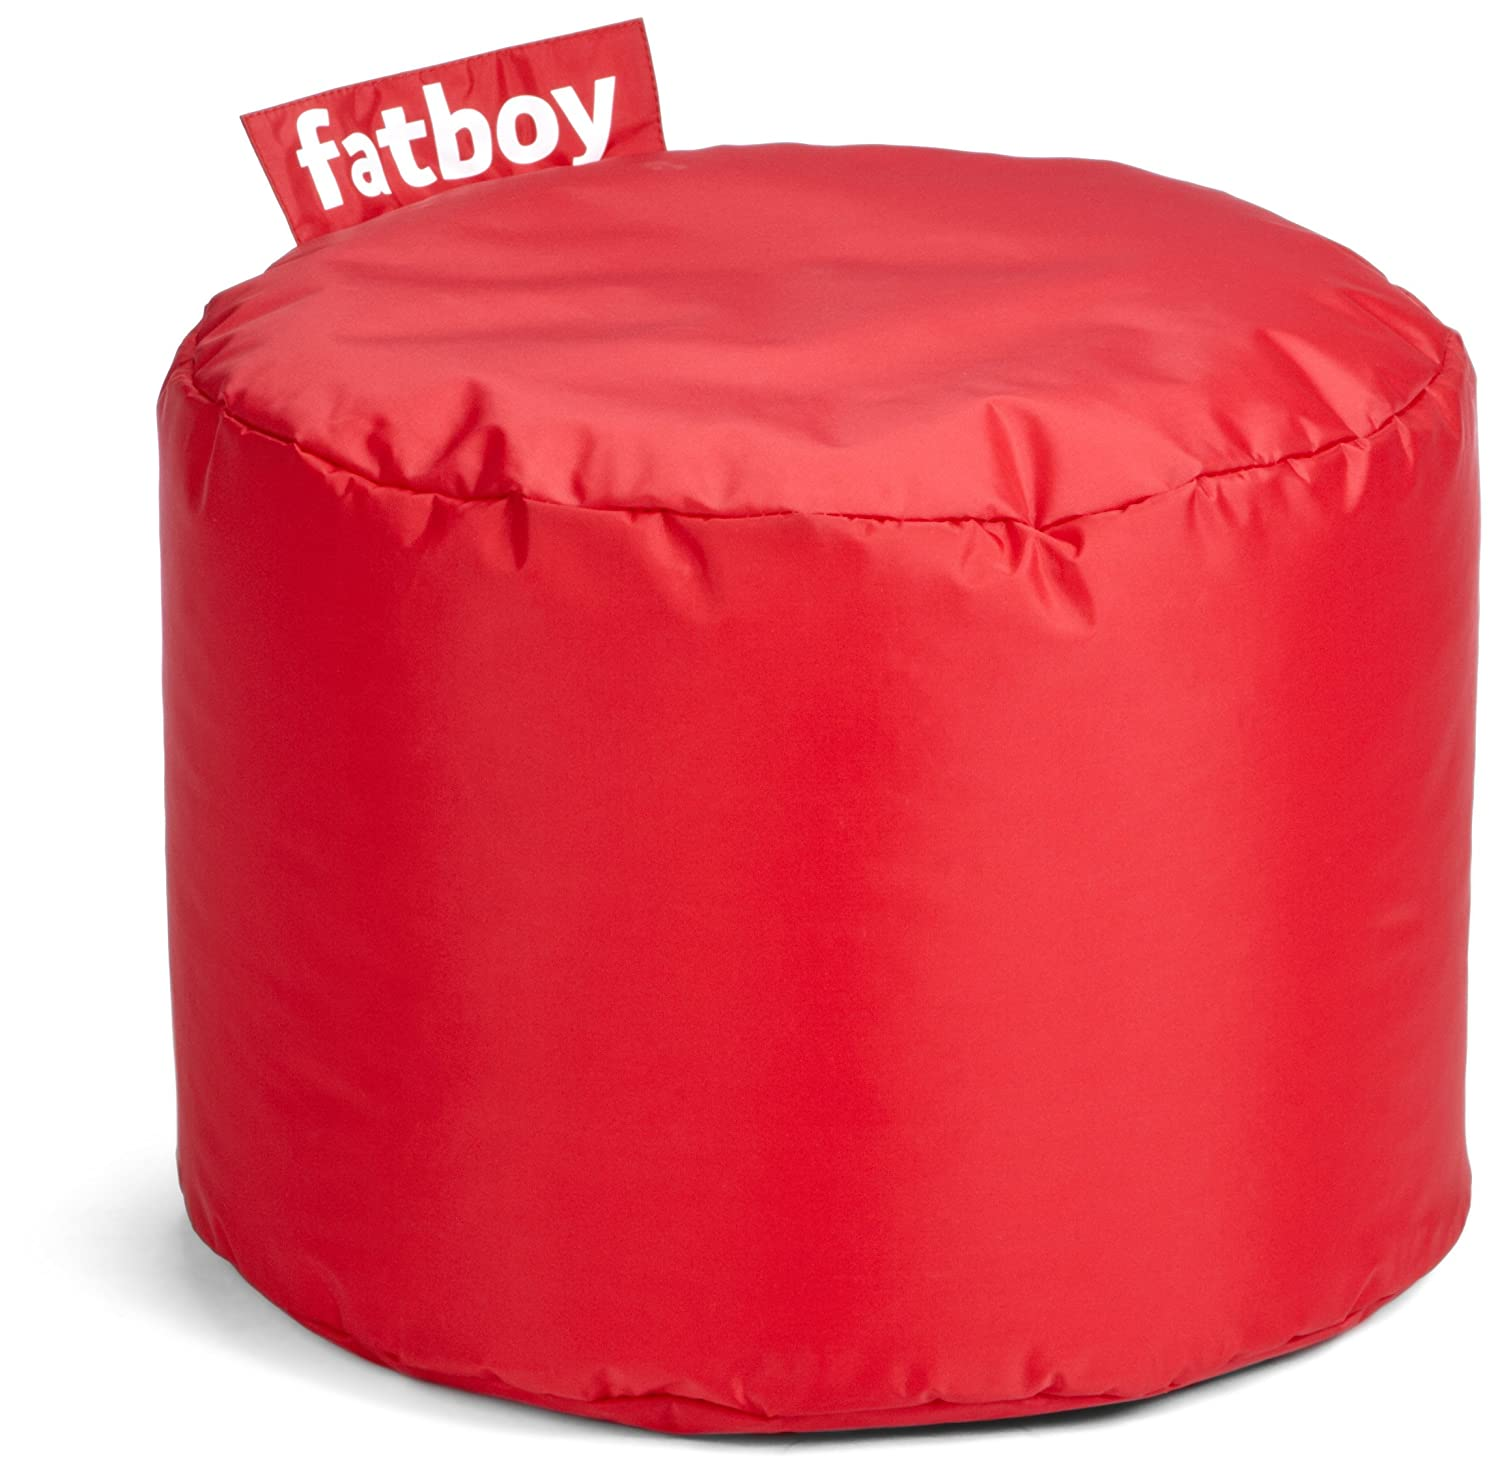 pouf fat boy interesting fatboy postbag with pouf fat boy amazing pouf fat boy with pouf fat. Black Bedroom Furniture Sets. Home Design Ideas